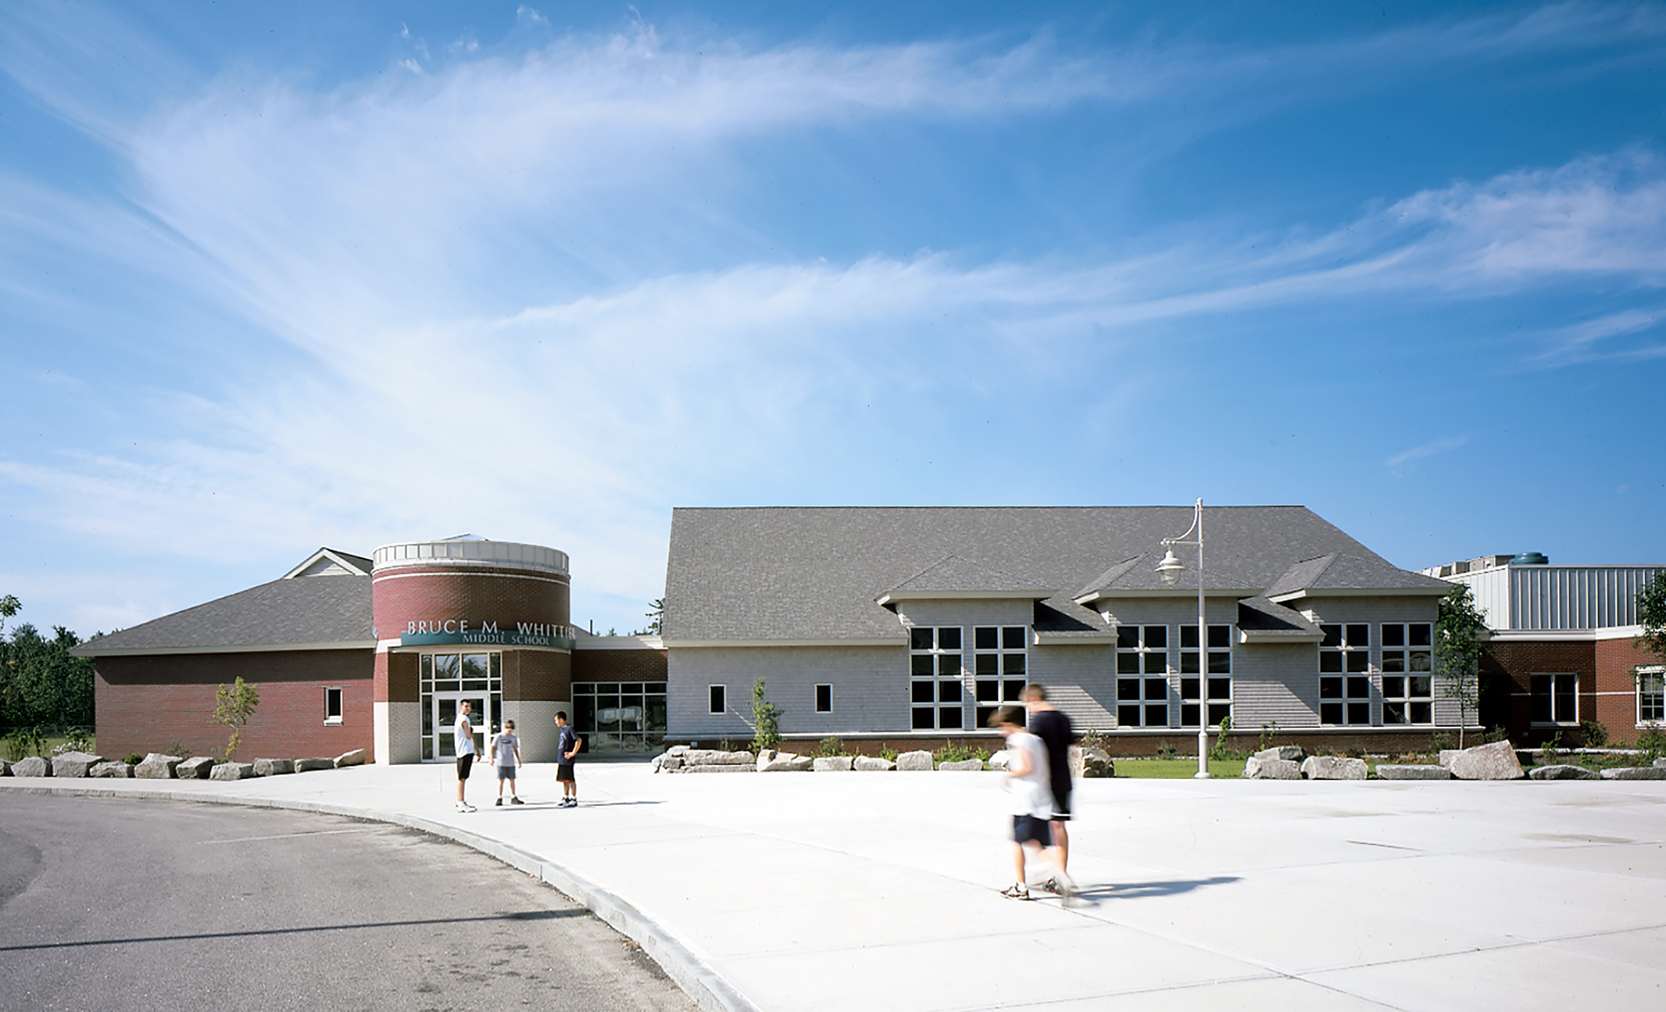 Whittier Middle School is a one-story wing attached to Poland Regional High School. The architecture of the two schools is quite distinct, though both have pitched roofs, a brick base, and high windows reminiscent of older buildings in the town.